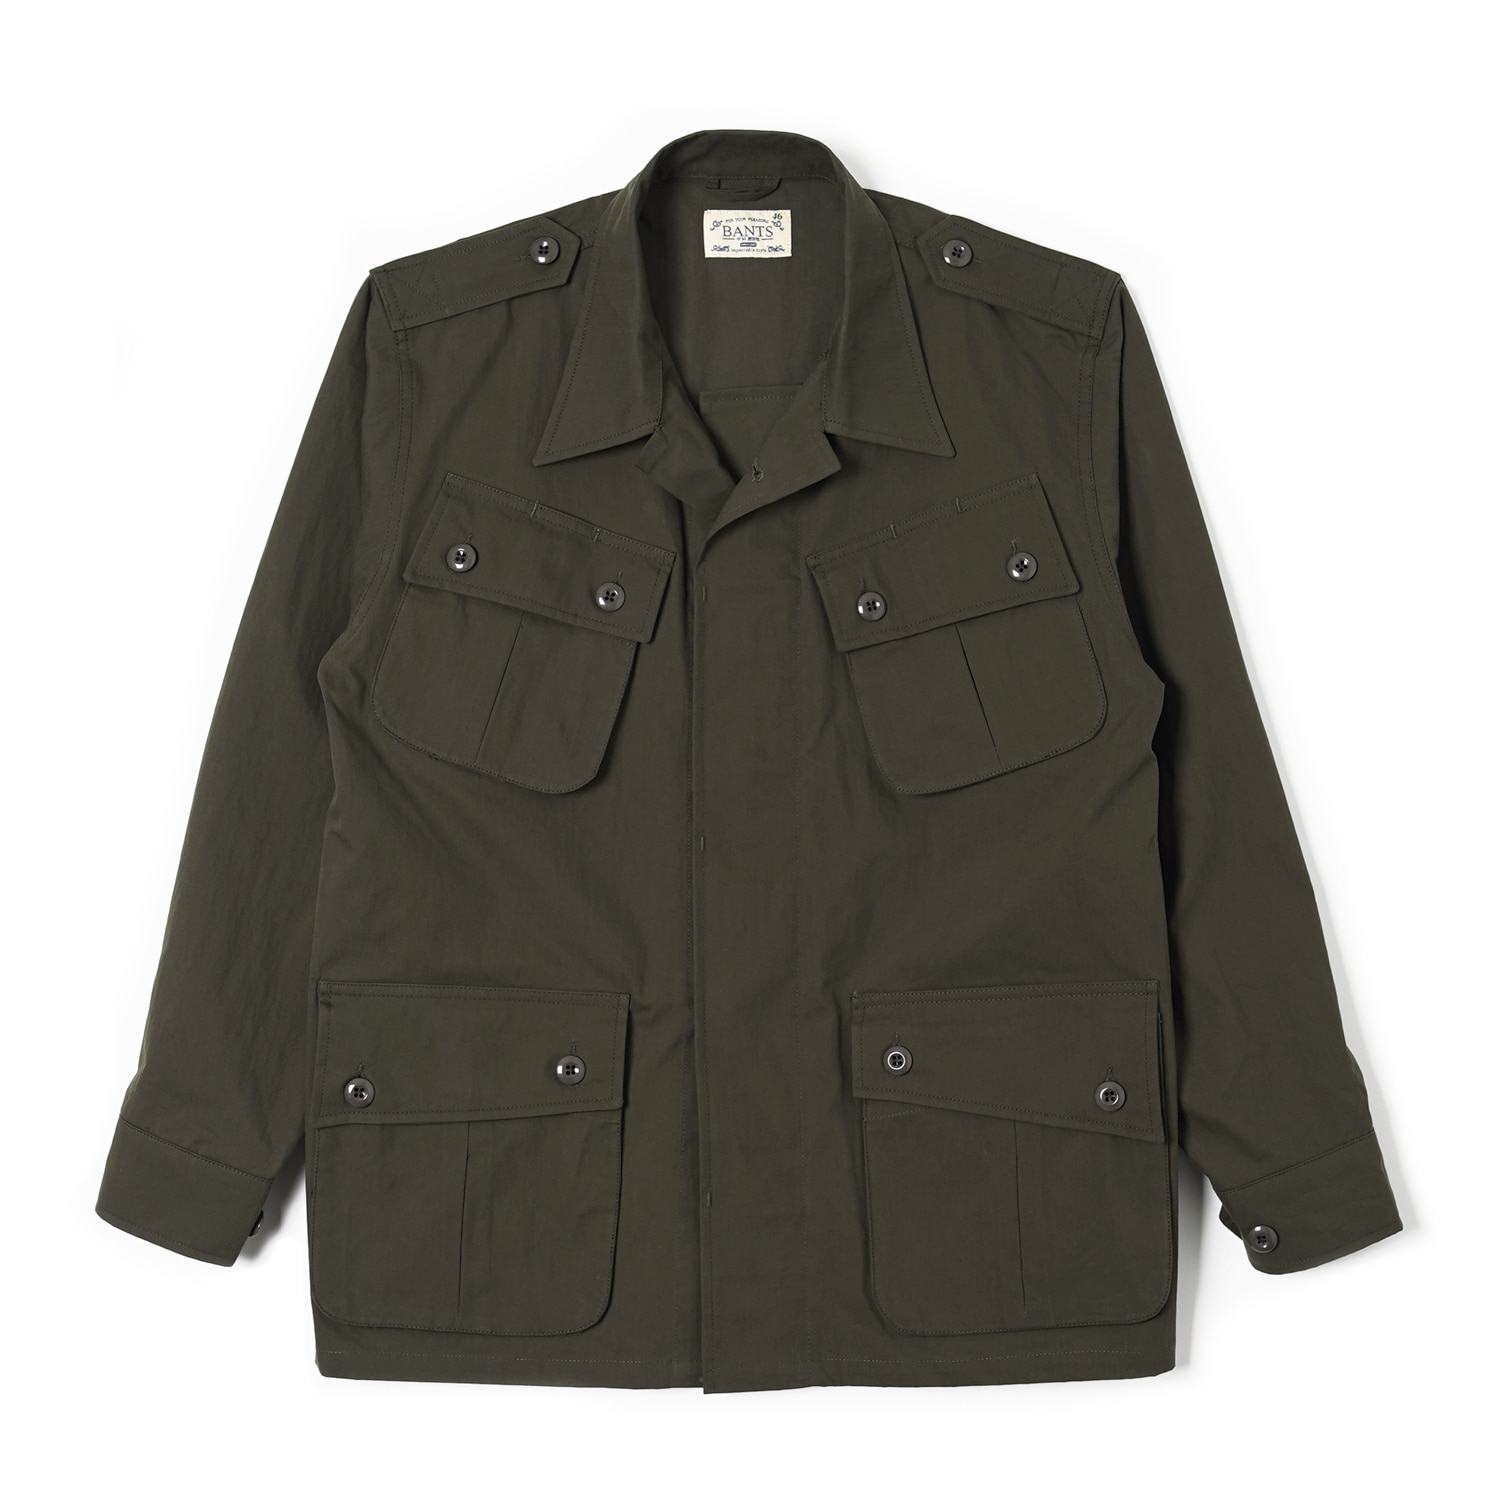 OSF Jungle Fatigue Jacket - Olive DrabBANTS(반츠)